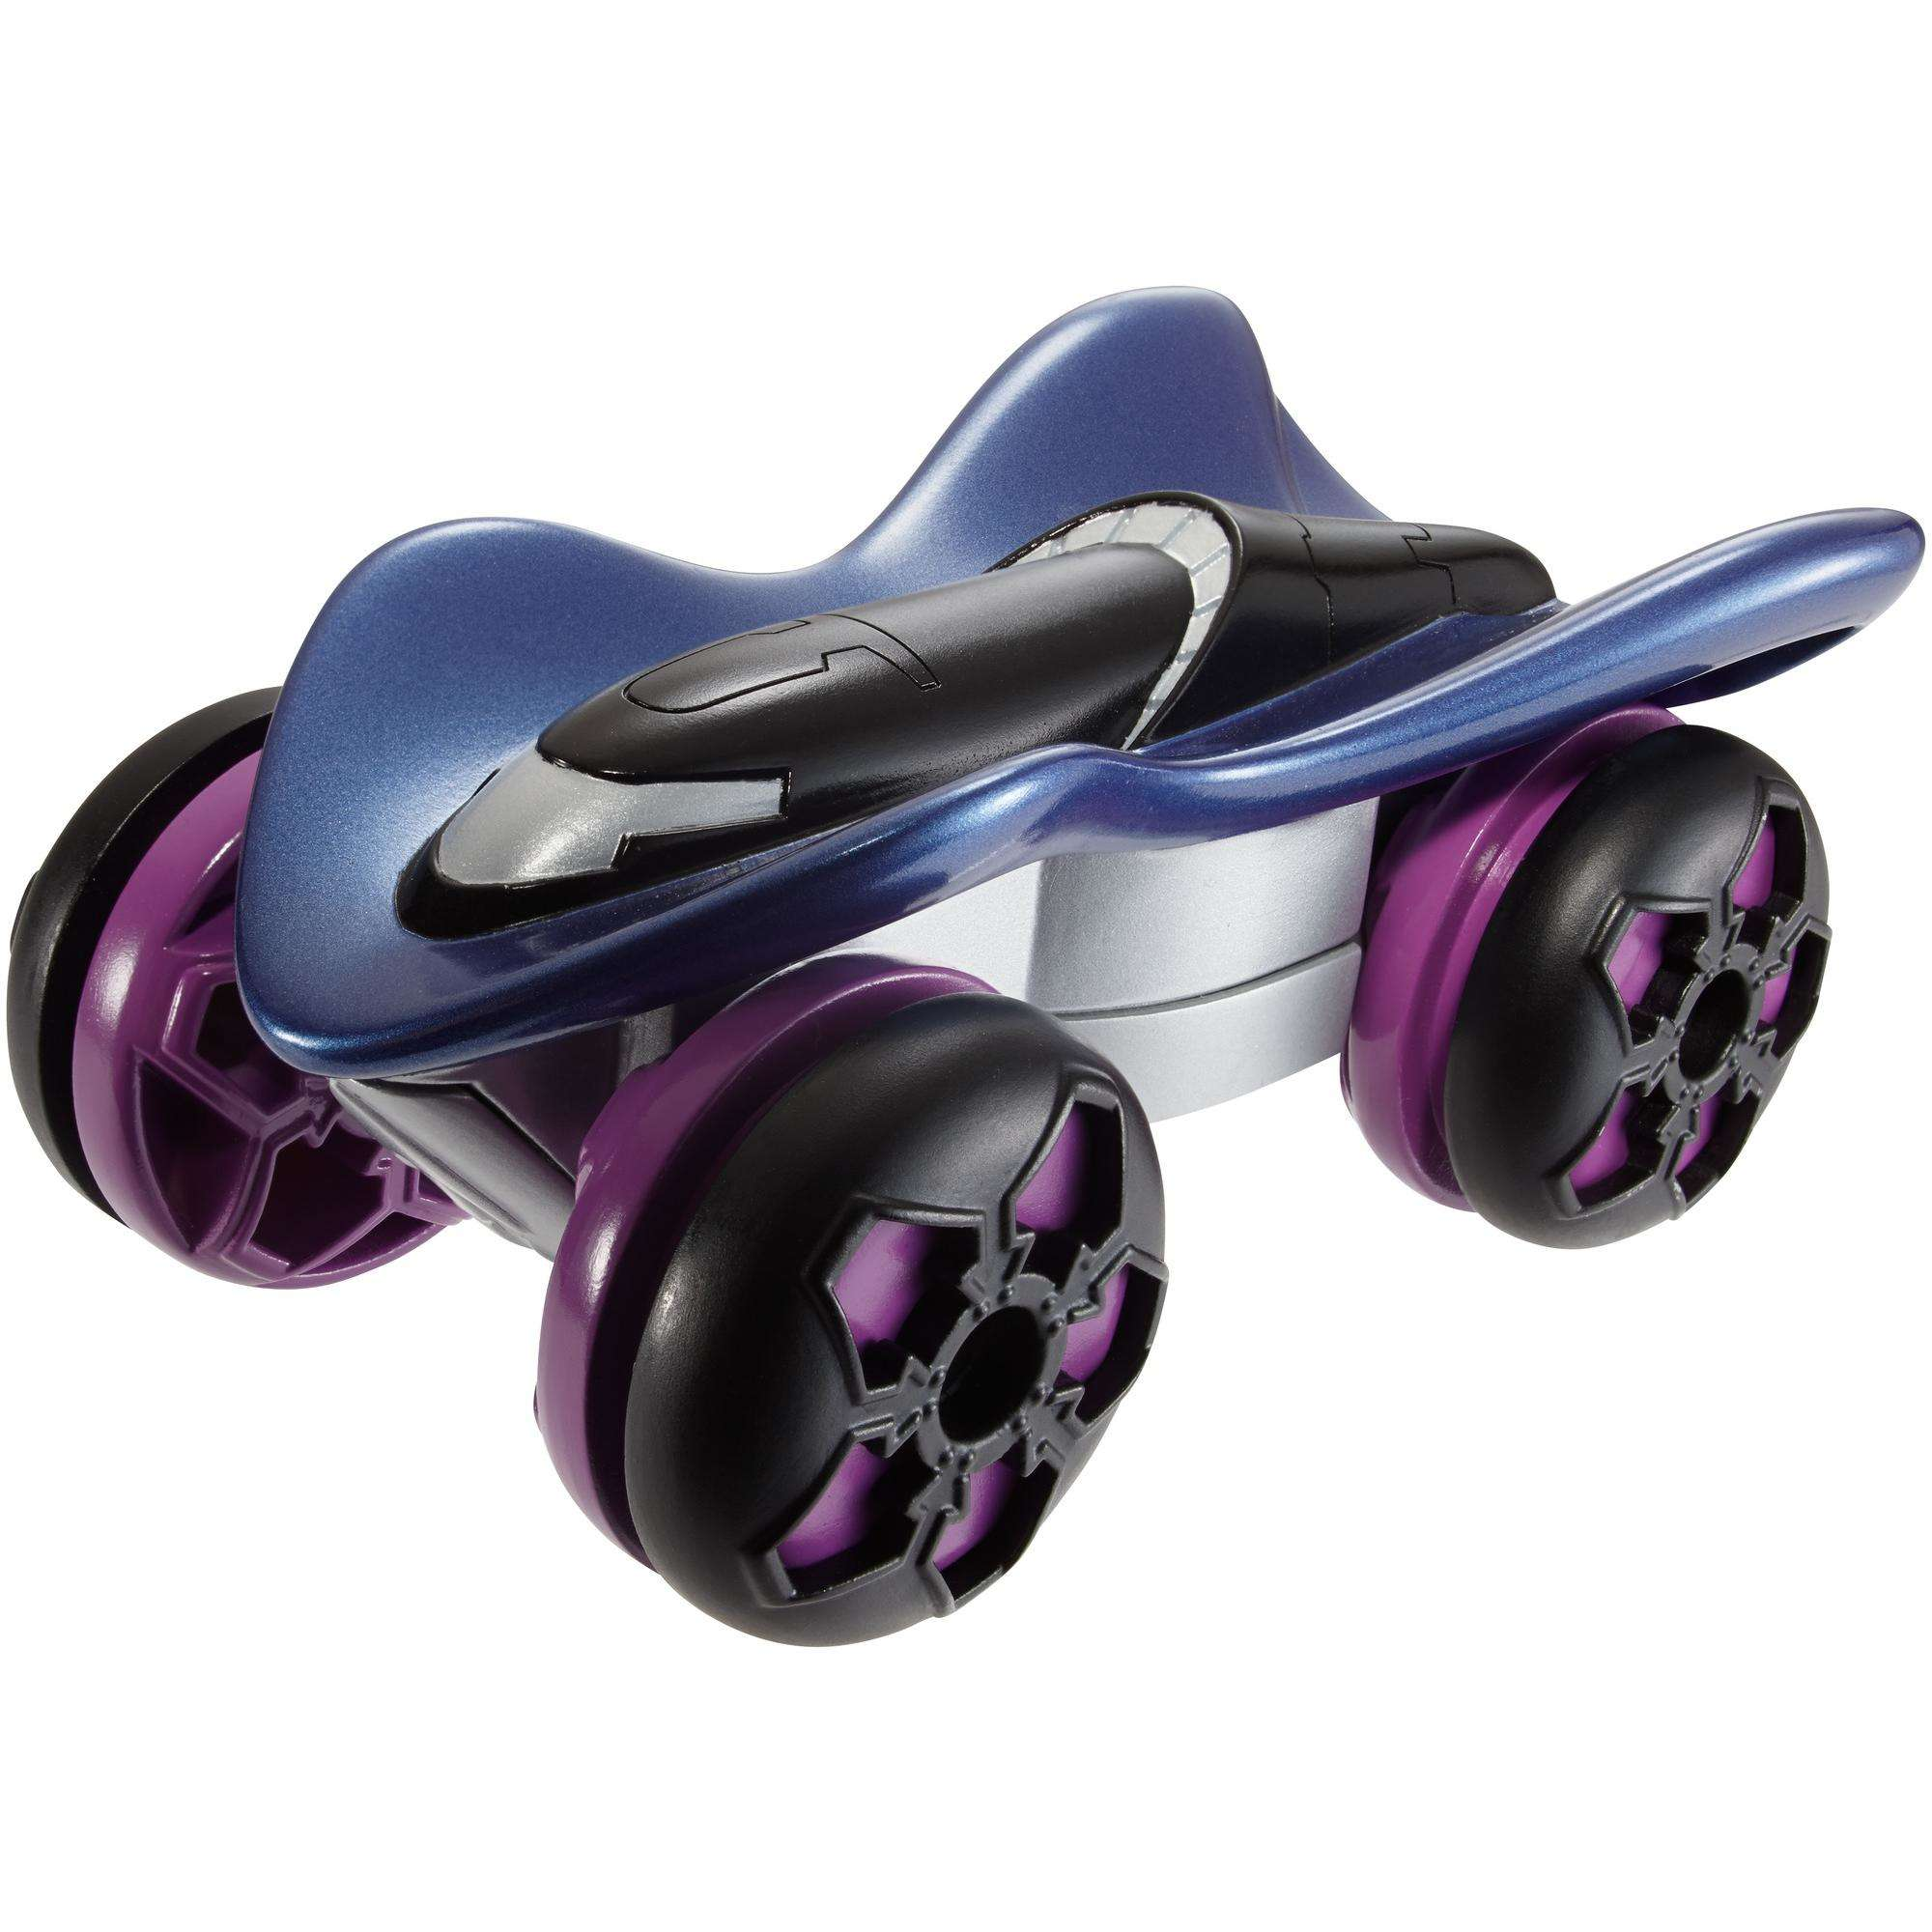 Hot Wheels Splash Rides All-The-Ray Vehicle by Mattel